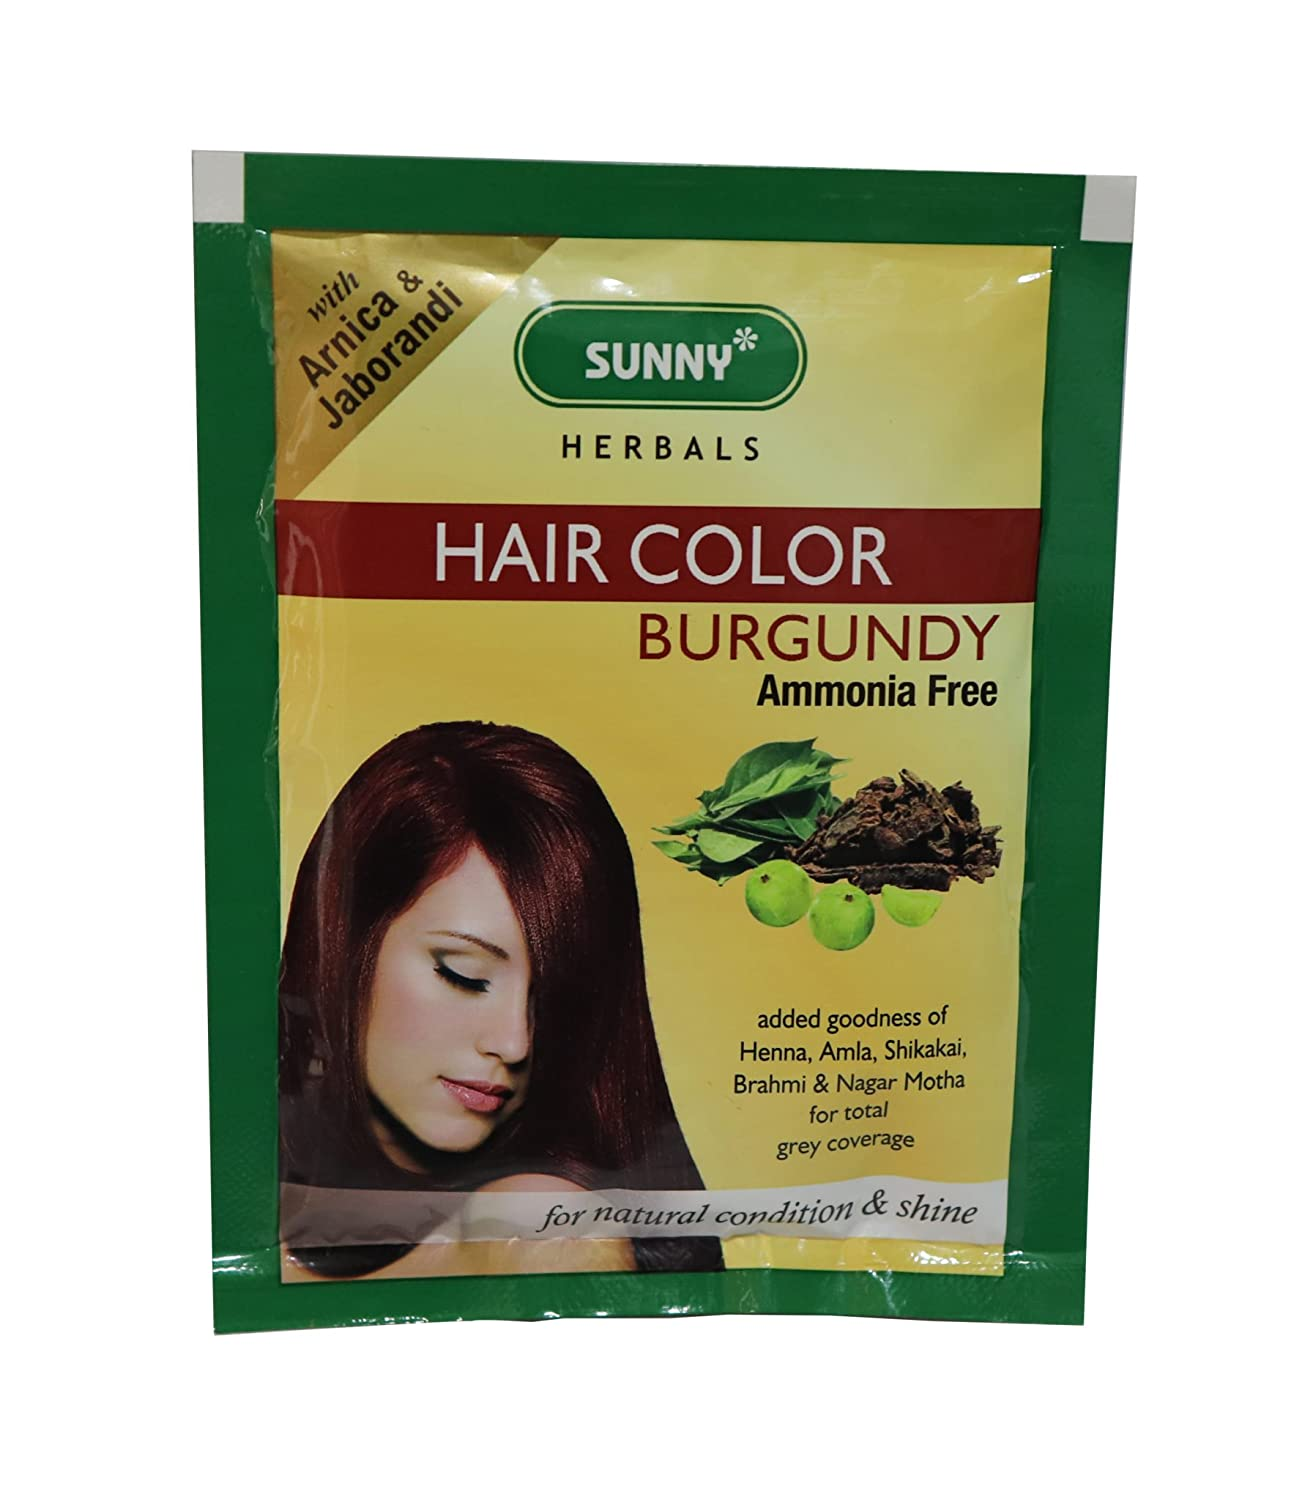 Bakson's Heena Powder Hair Dye Naturally Nourishing Hair Color Bakson' s